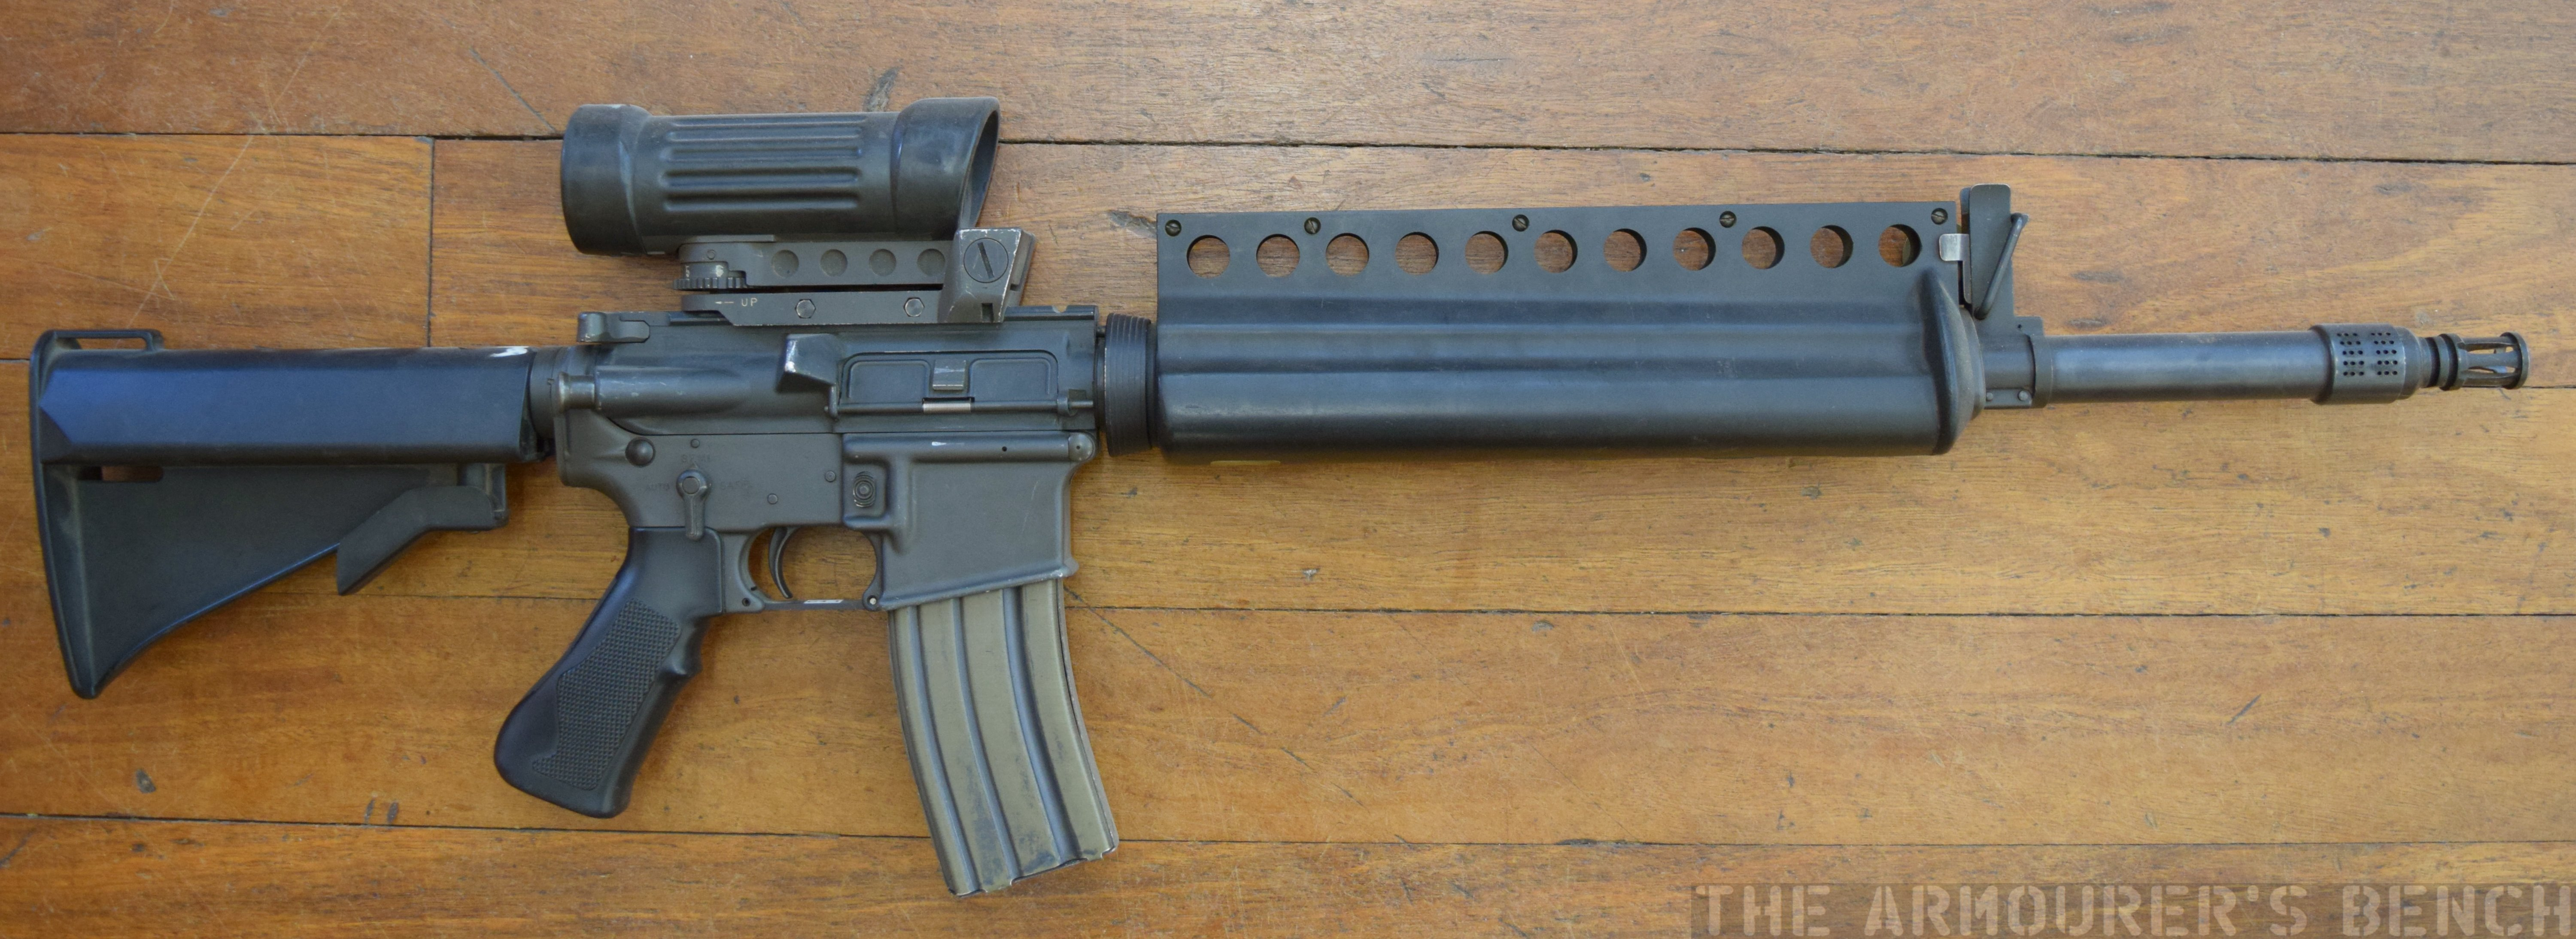 Colt ACR rifle submission